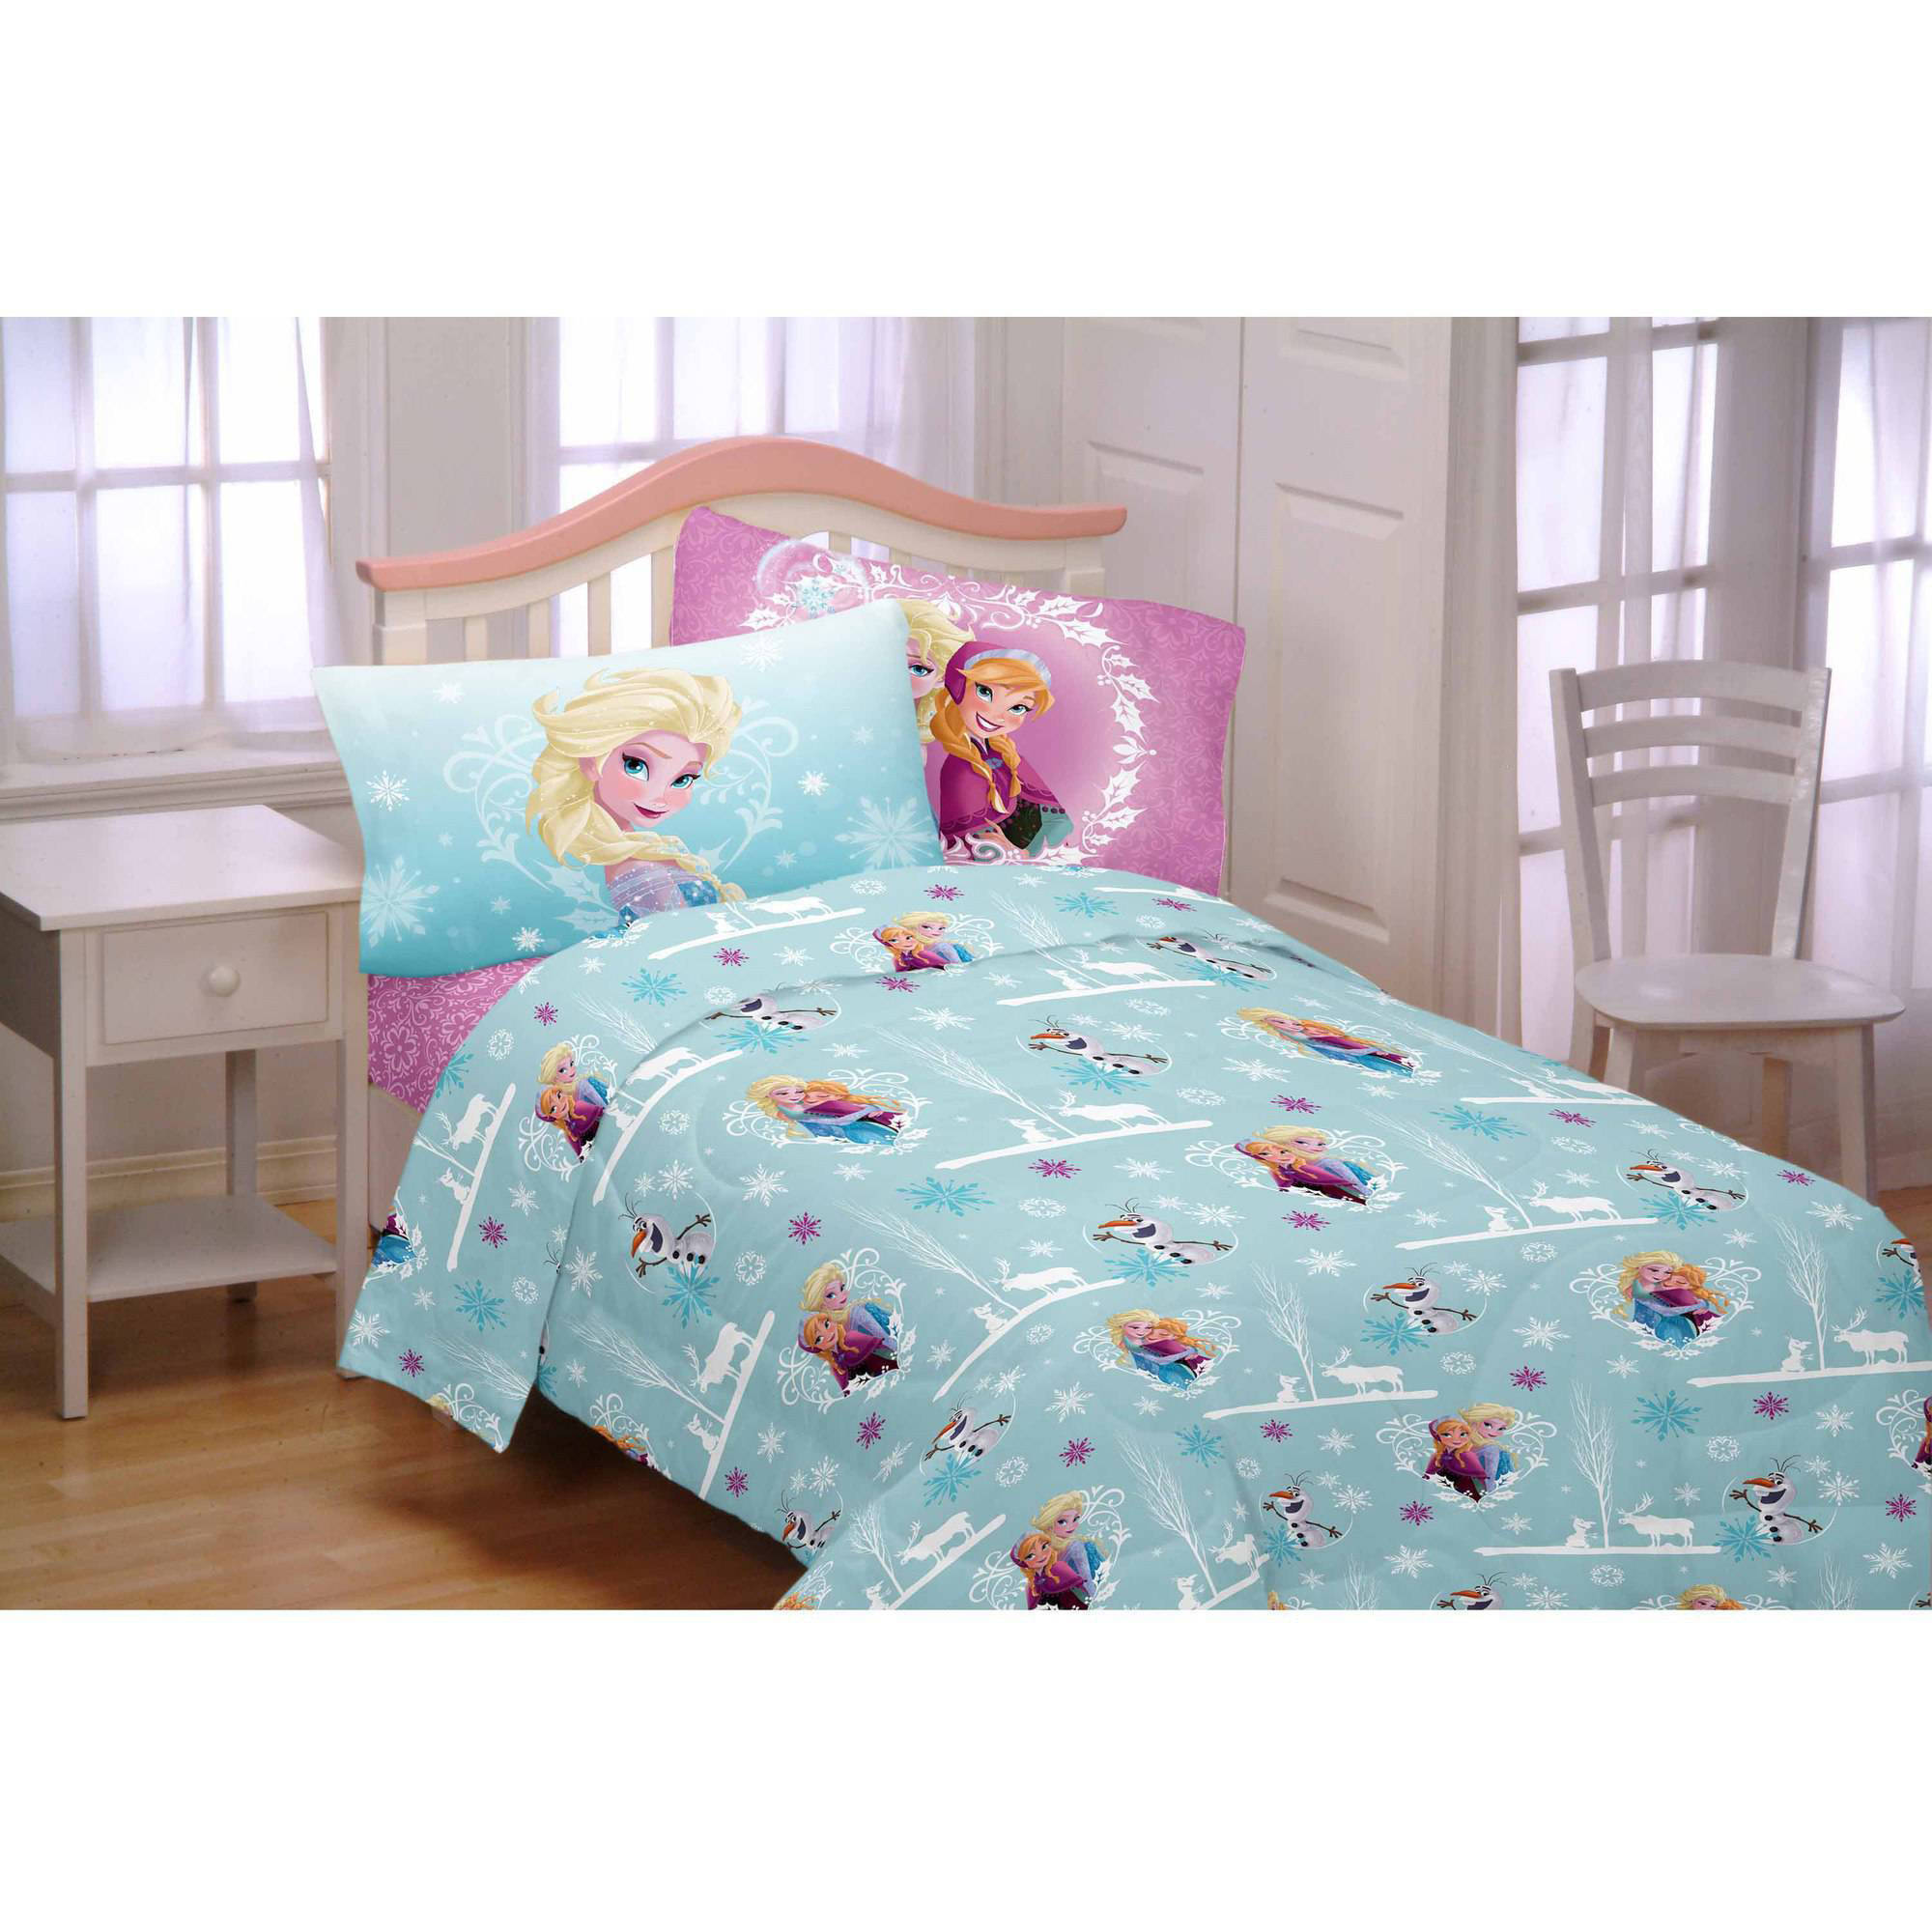 Disney's Frozen 3-Piece Flannel Twin Sheet Set